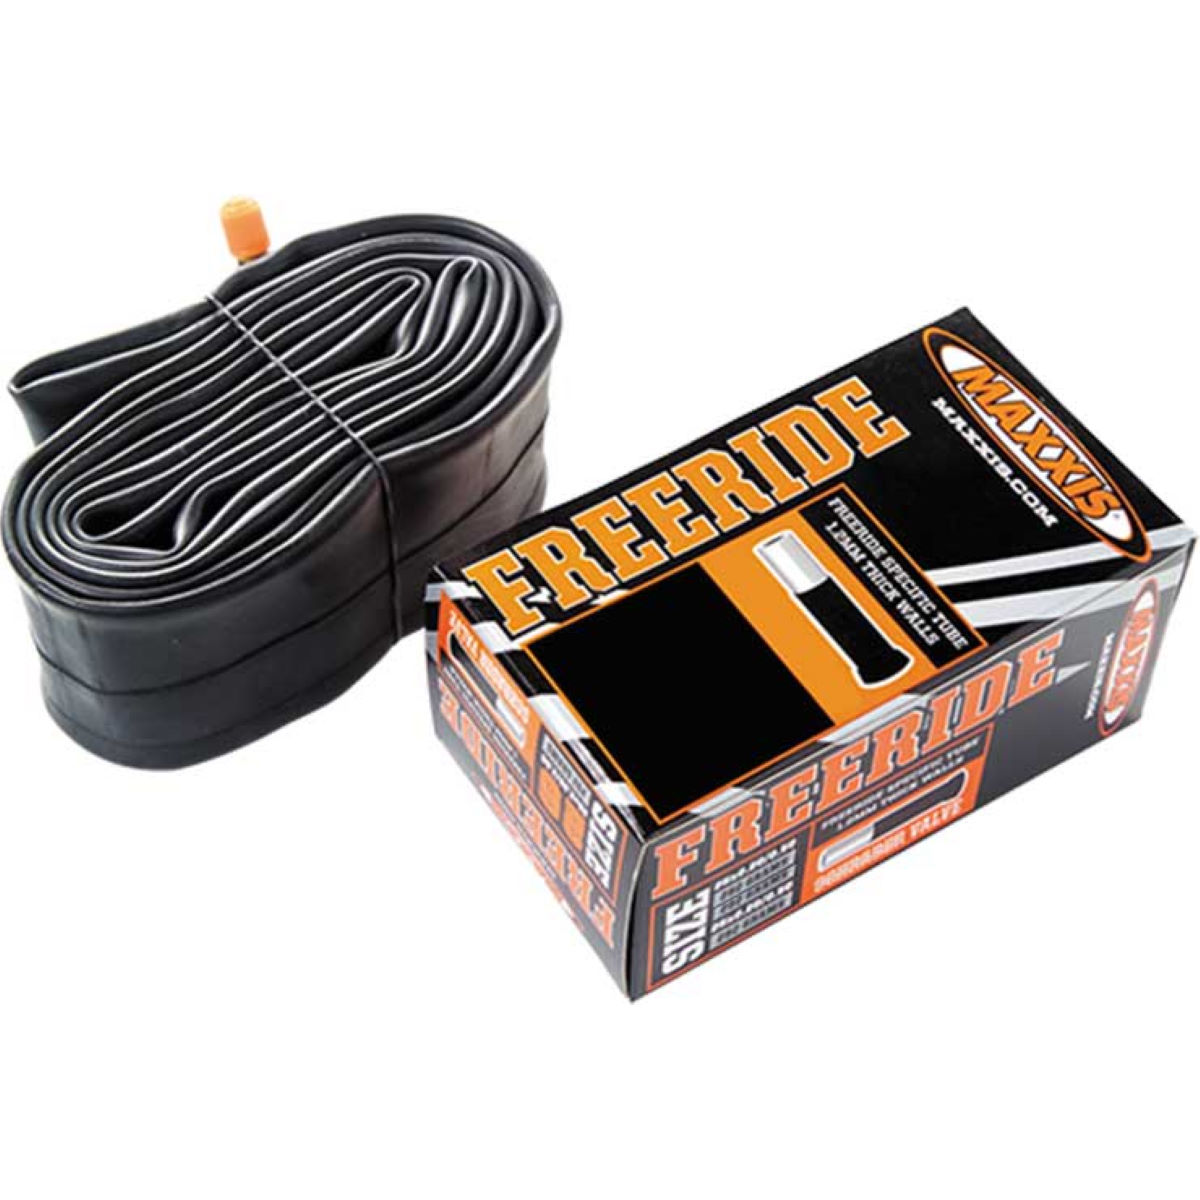 Maxxis Maxxis Freeride Tube   Inner Tubes